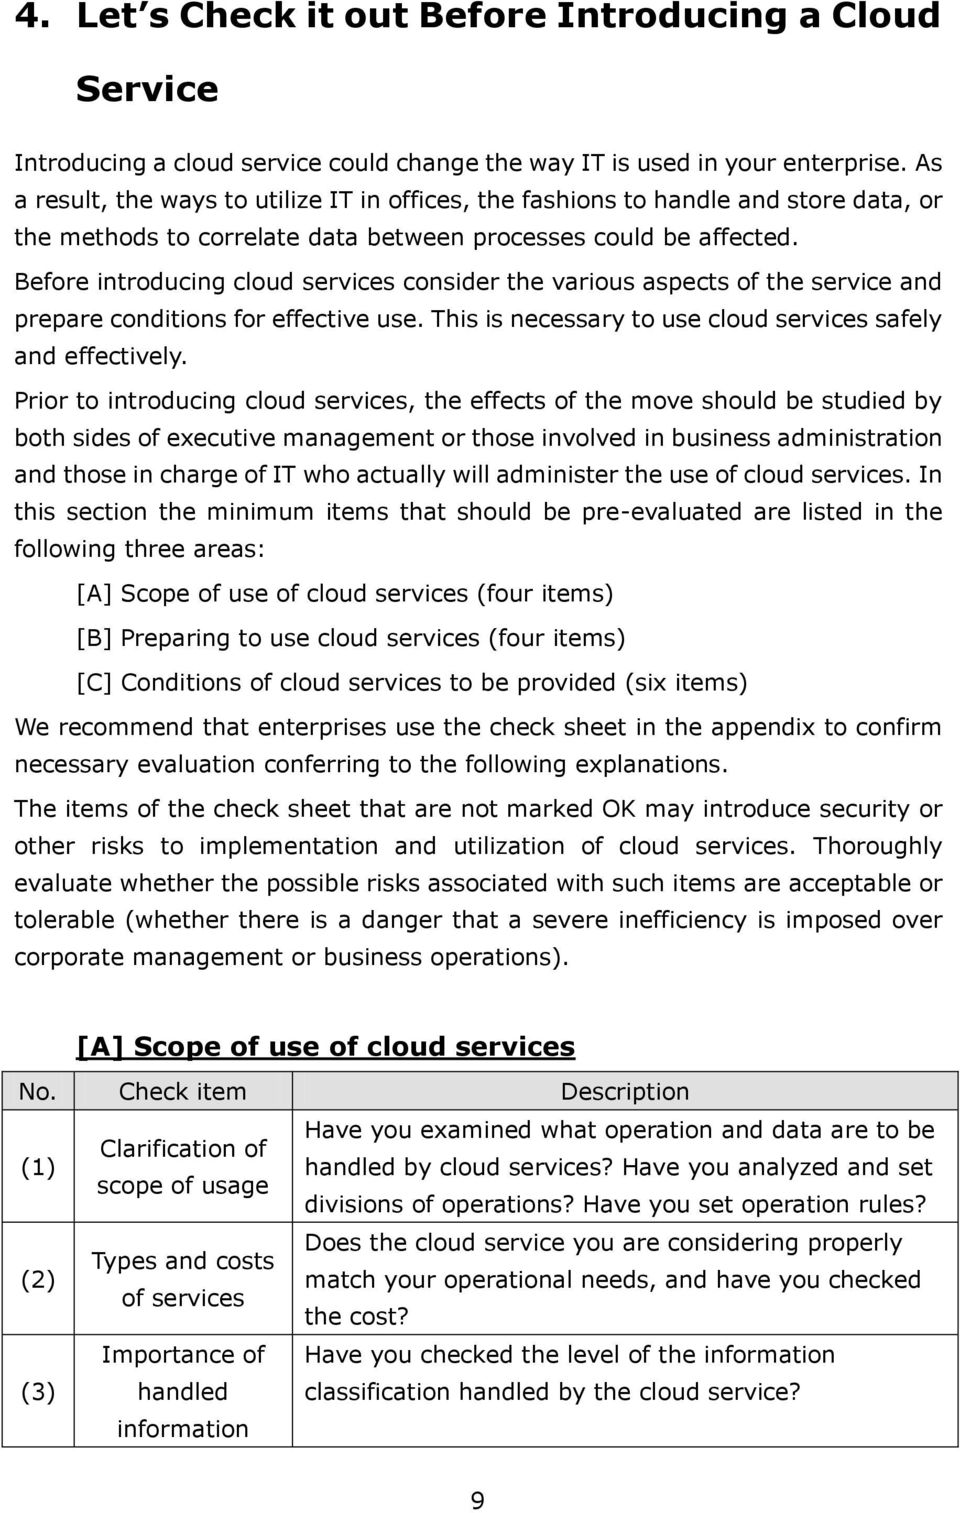 Before introducing cloud services consider the various aspects of the service and prepare conditions for effective use. This is necessary to use cloud services safely and effectively.